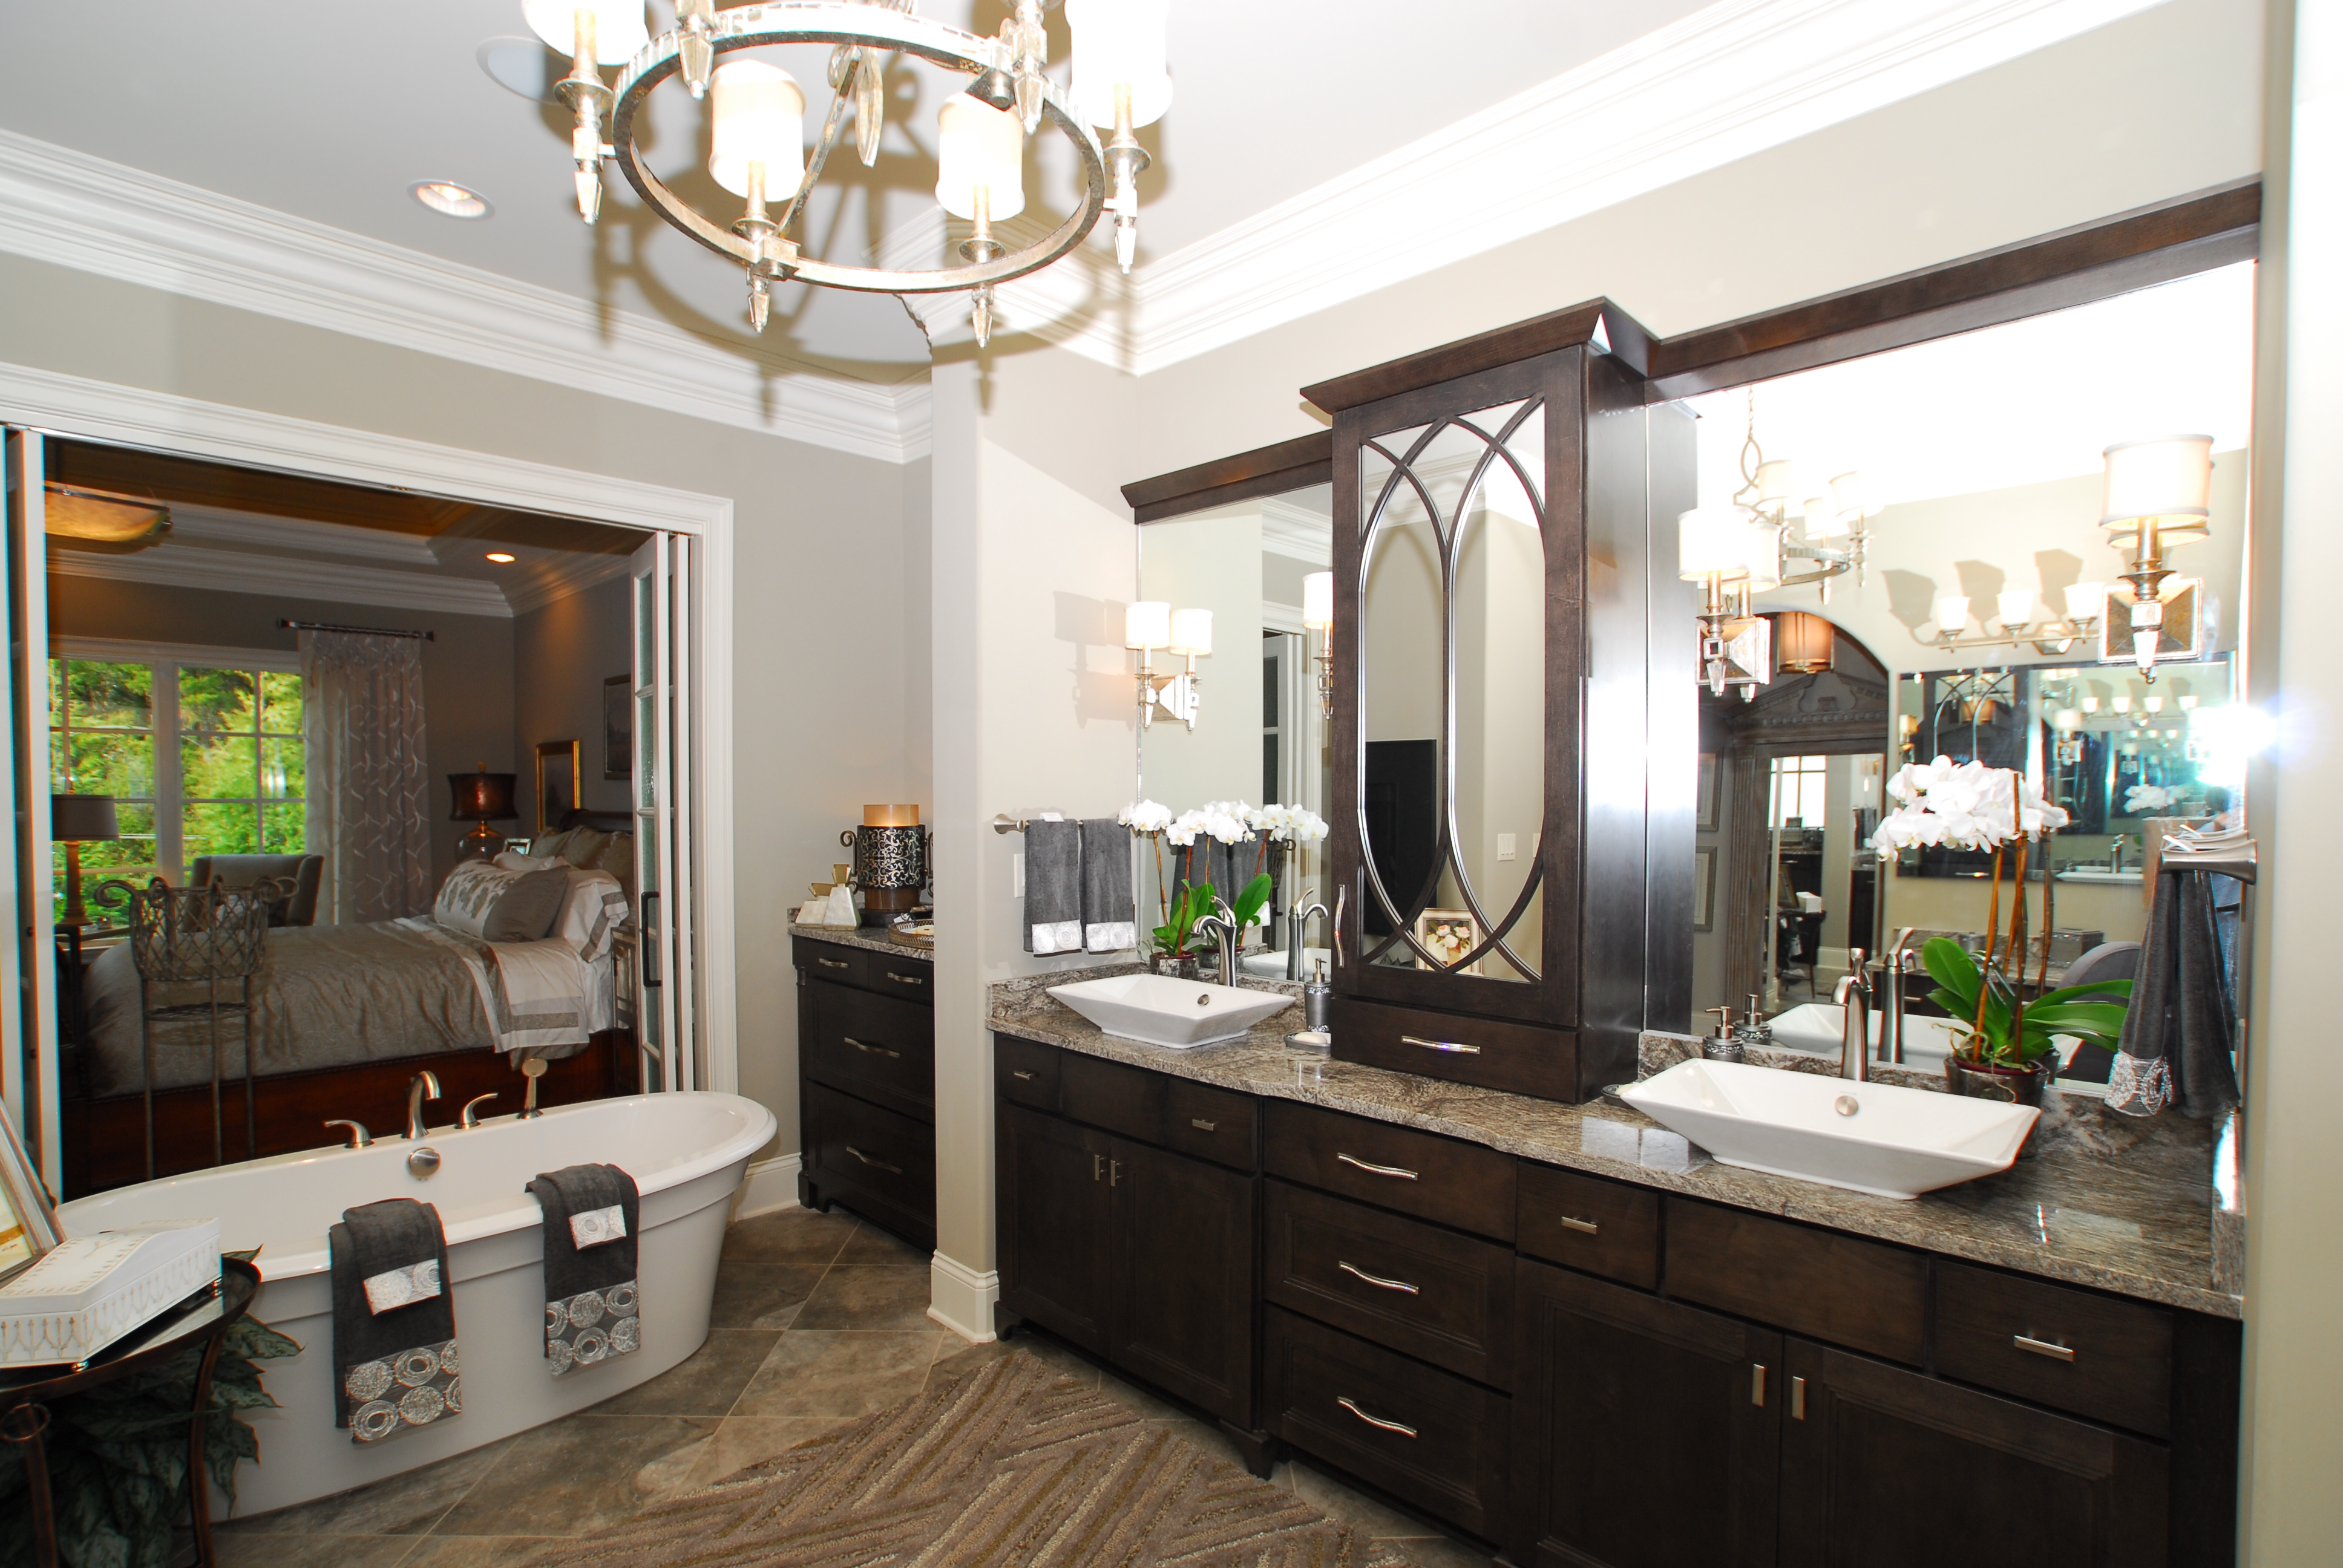 Awesome Symphony House Bathroom Good Looking